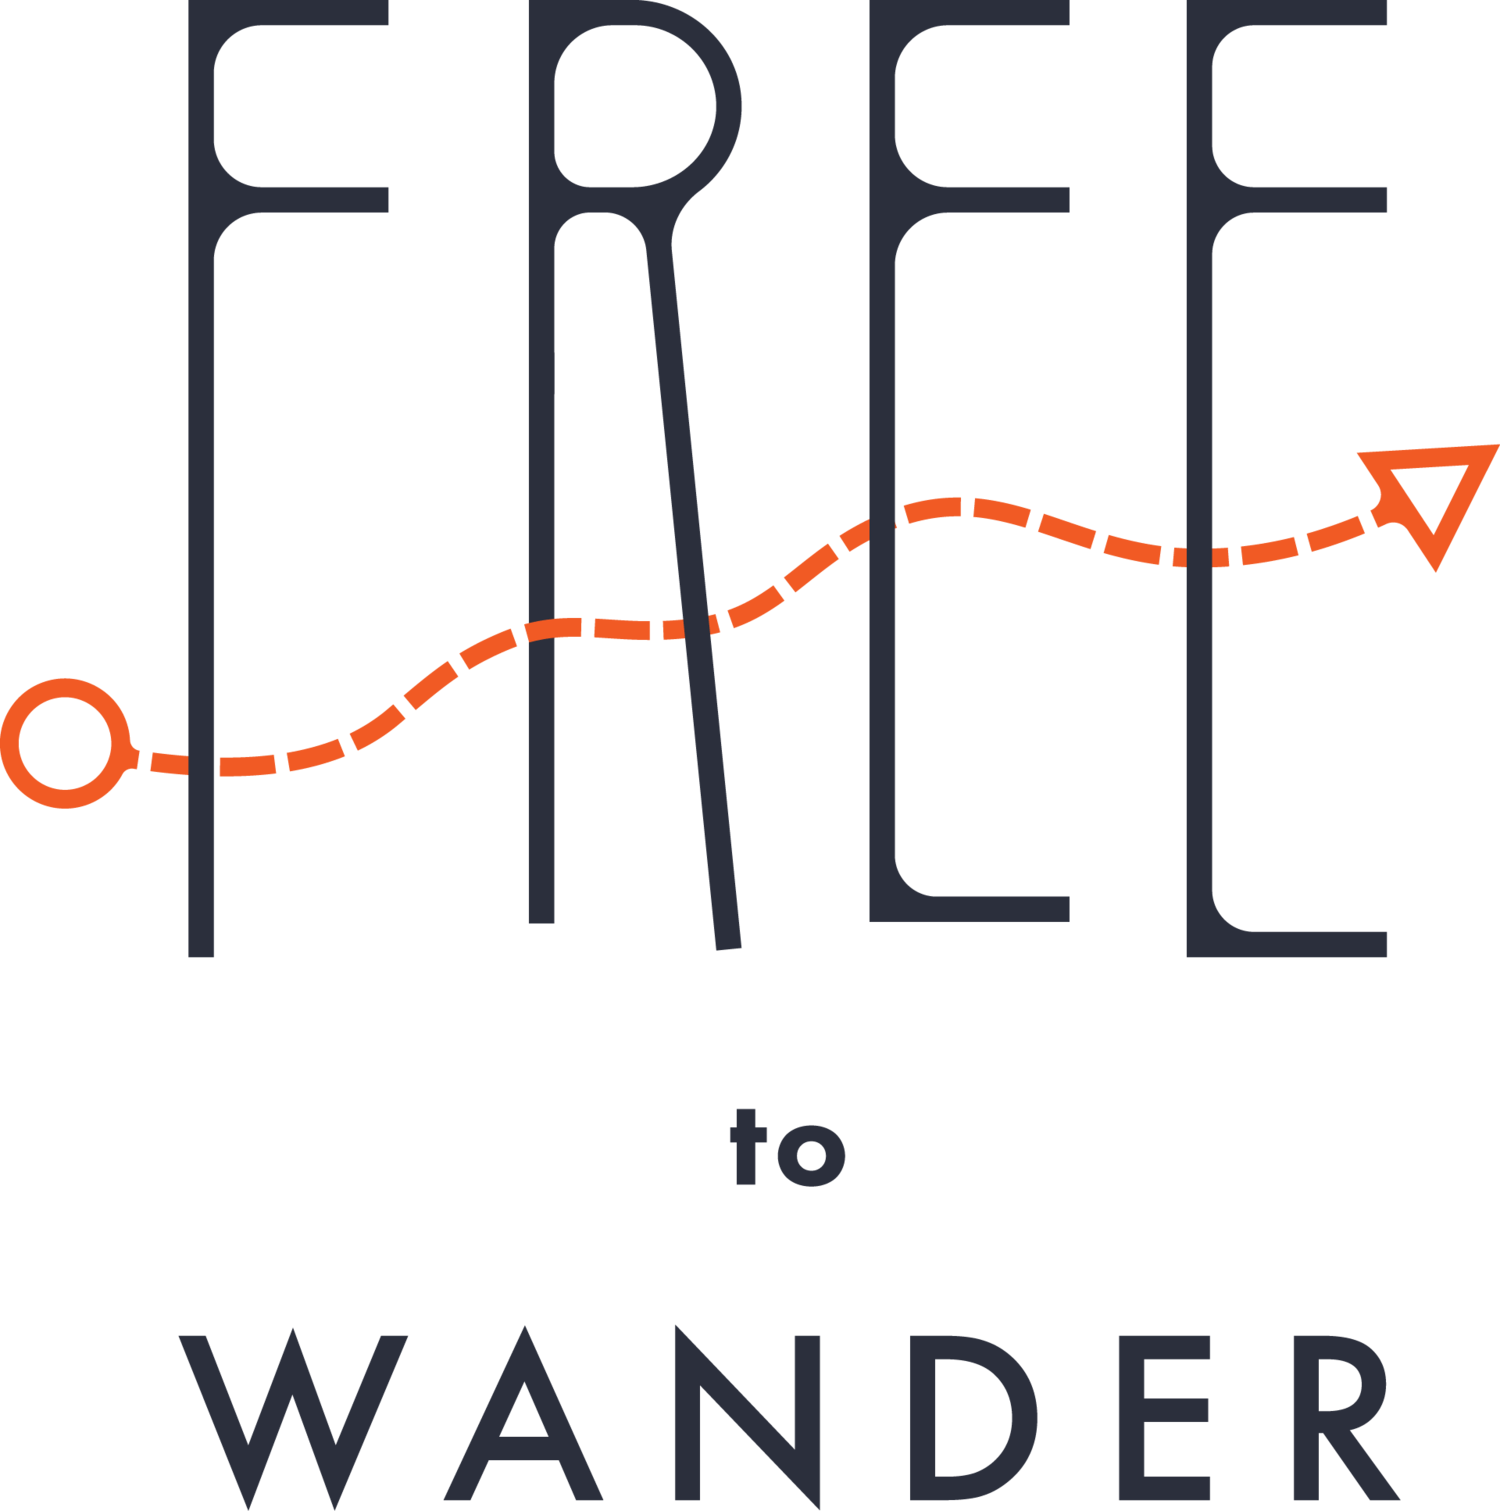 Free To Wander